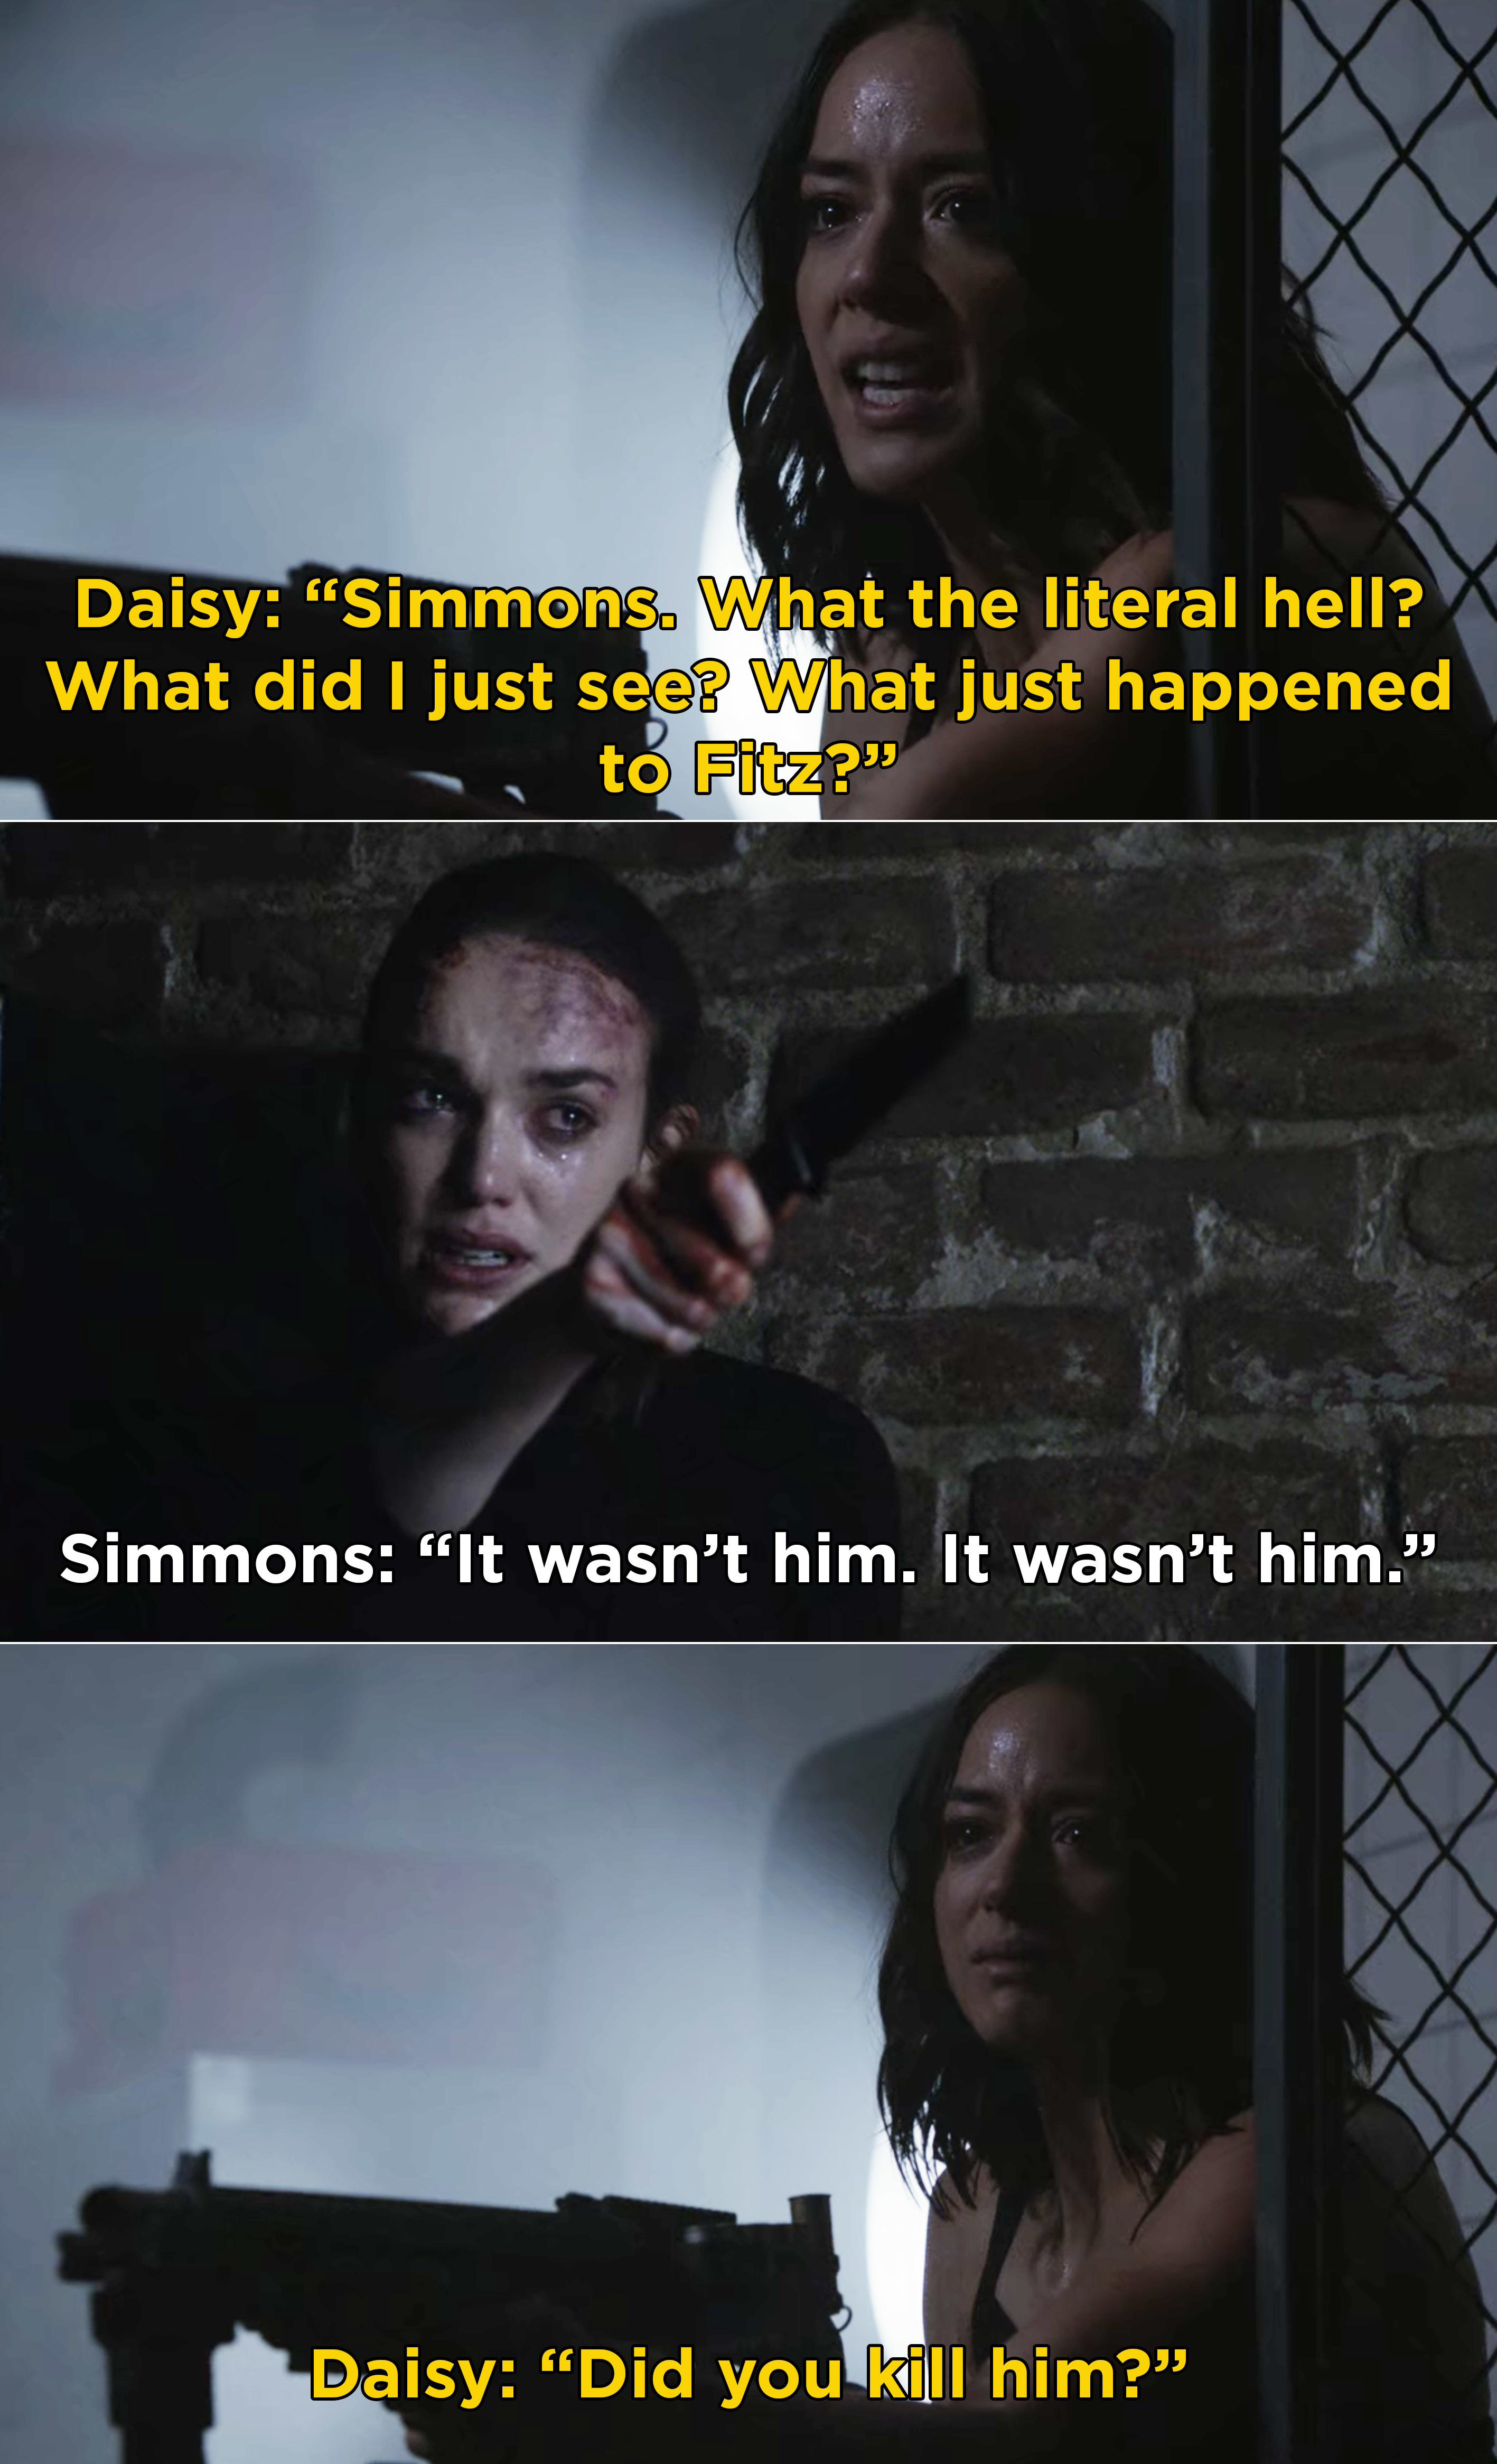 Daisy asking Simmons what did she just see and is Fitz dead and Simmons saying that it wasn't really him